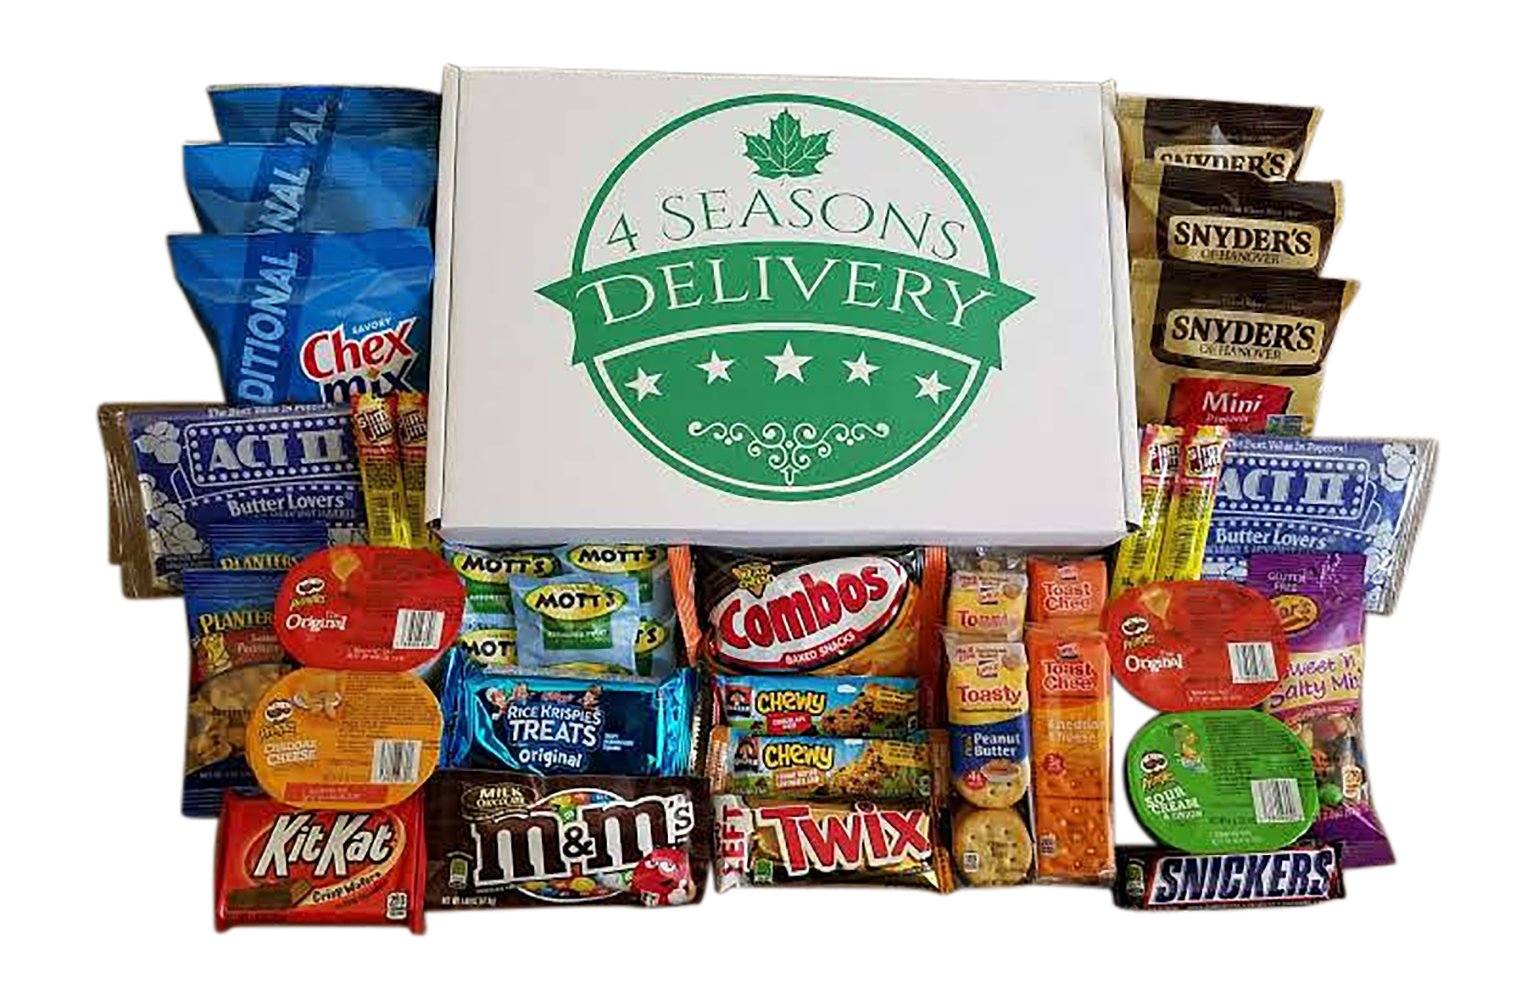 Sweet and Salty Snack Box, College Care Package, Movie Night Snacks, Military Care Package, Birthday and Holiday Gift, 4 SEASONS DELIVERY, 34 Count by 4 SEASONS DELIVERY